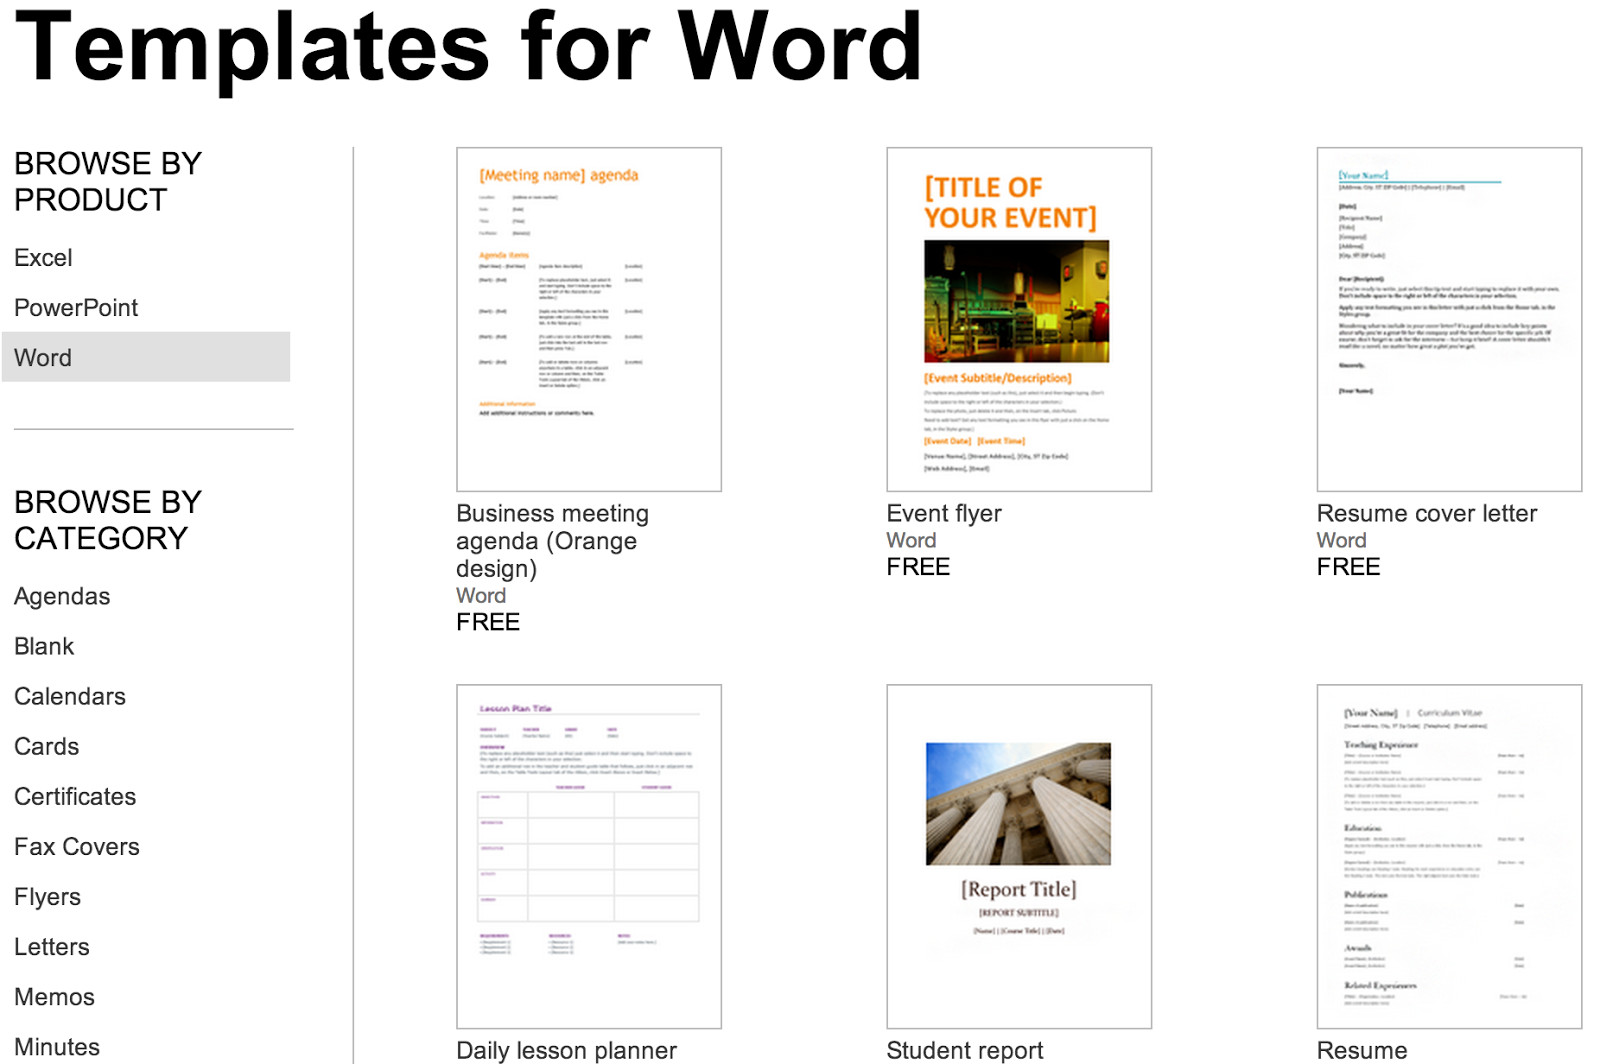 Business Hours Template Microsoft Word Over 250 Free Microsoft Fice Templates & Documents